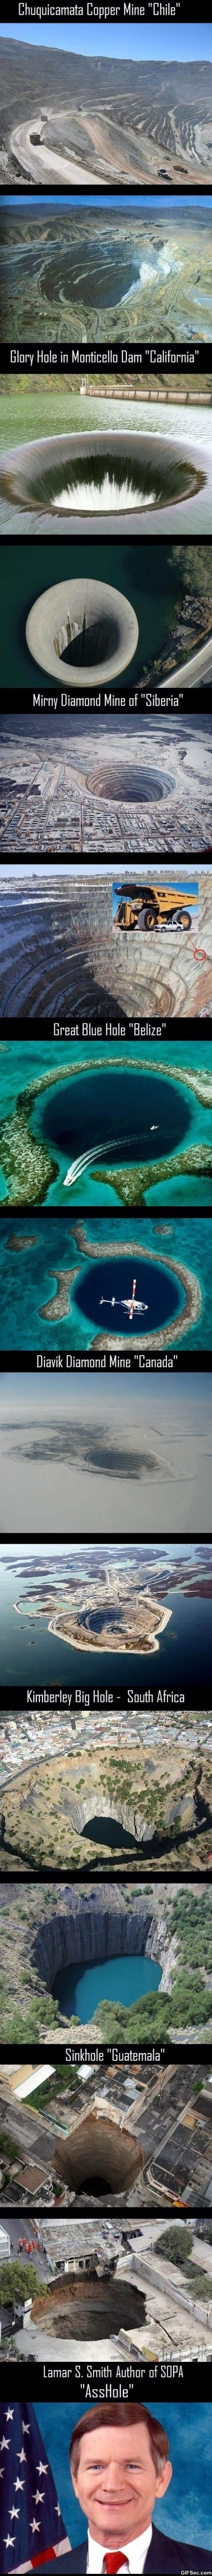 biggest-holes-on-earth